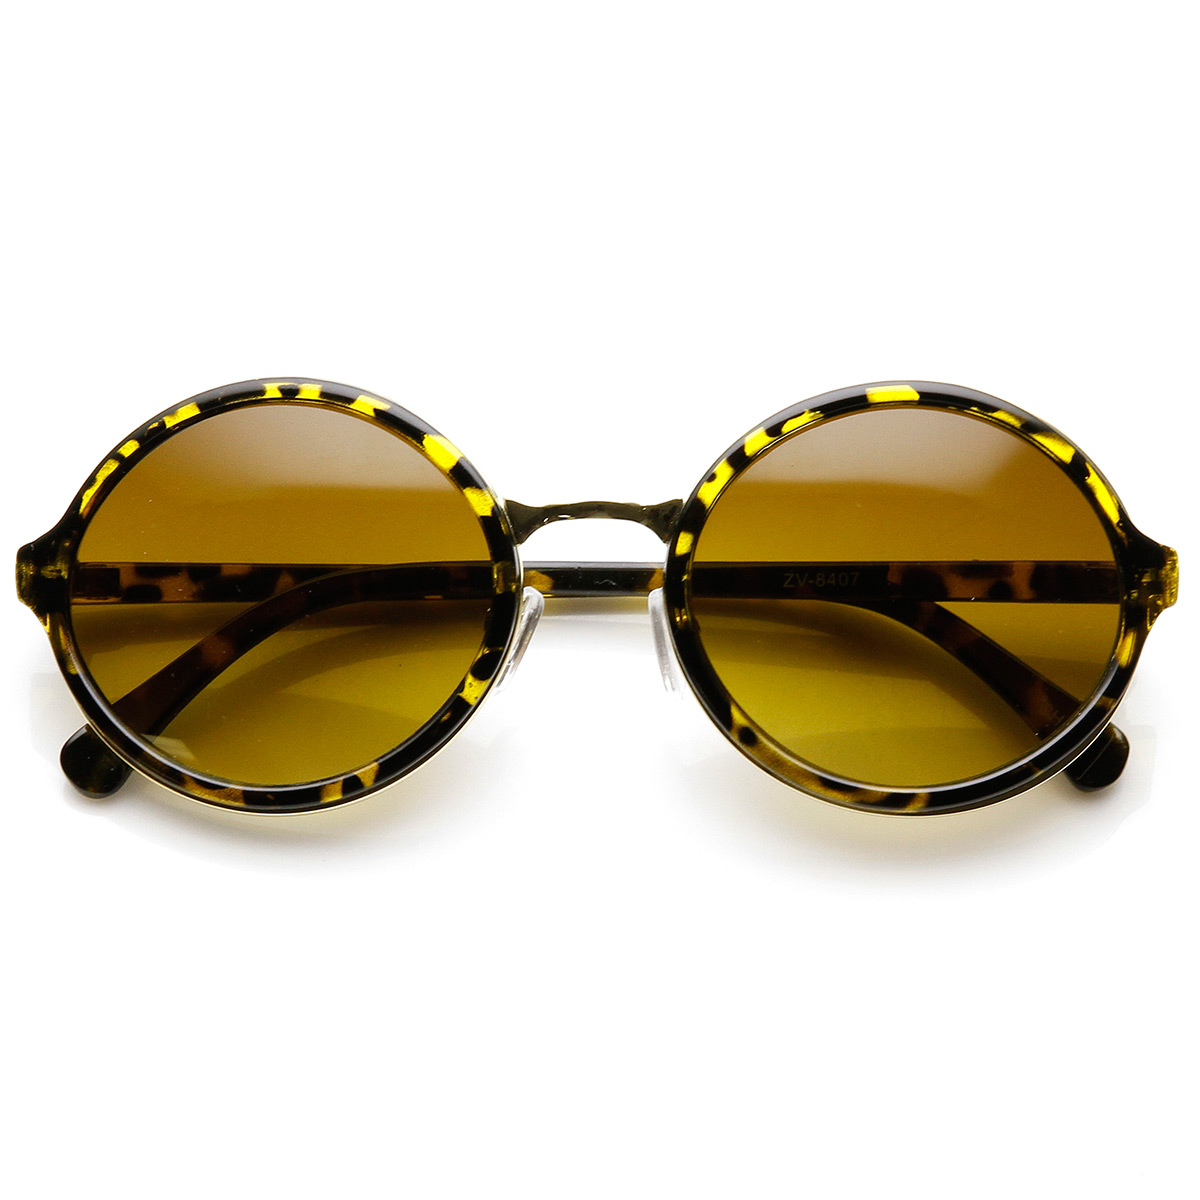 Vintage-Inspired-Classic-Round-Circle-Sunglasses-w-Metal-Bridge